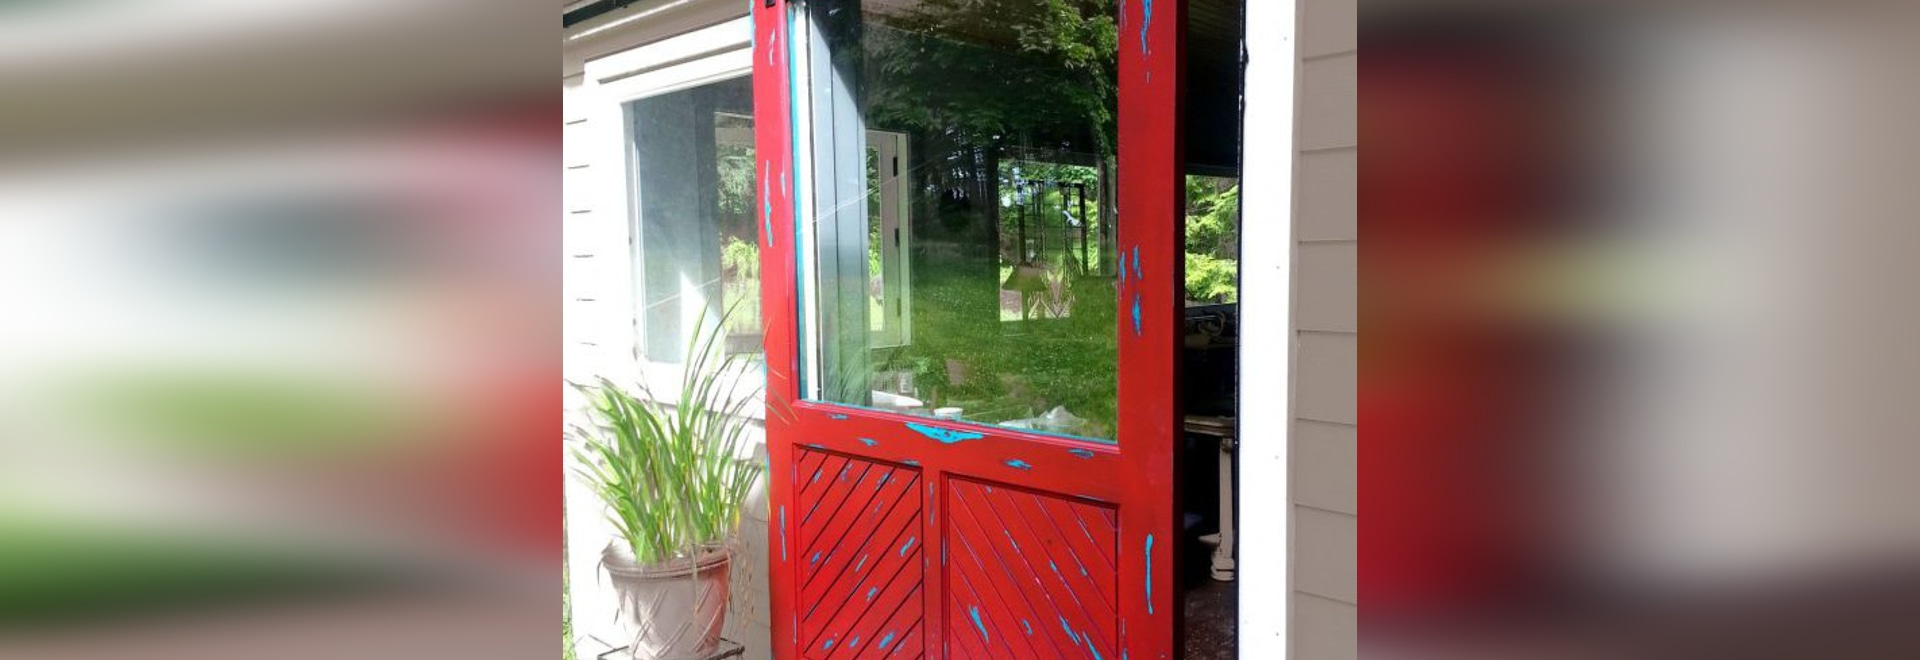 New Sliding Entry Door By Appwood Appwood